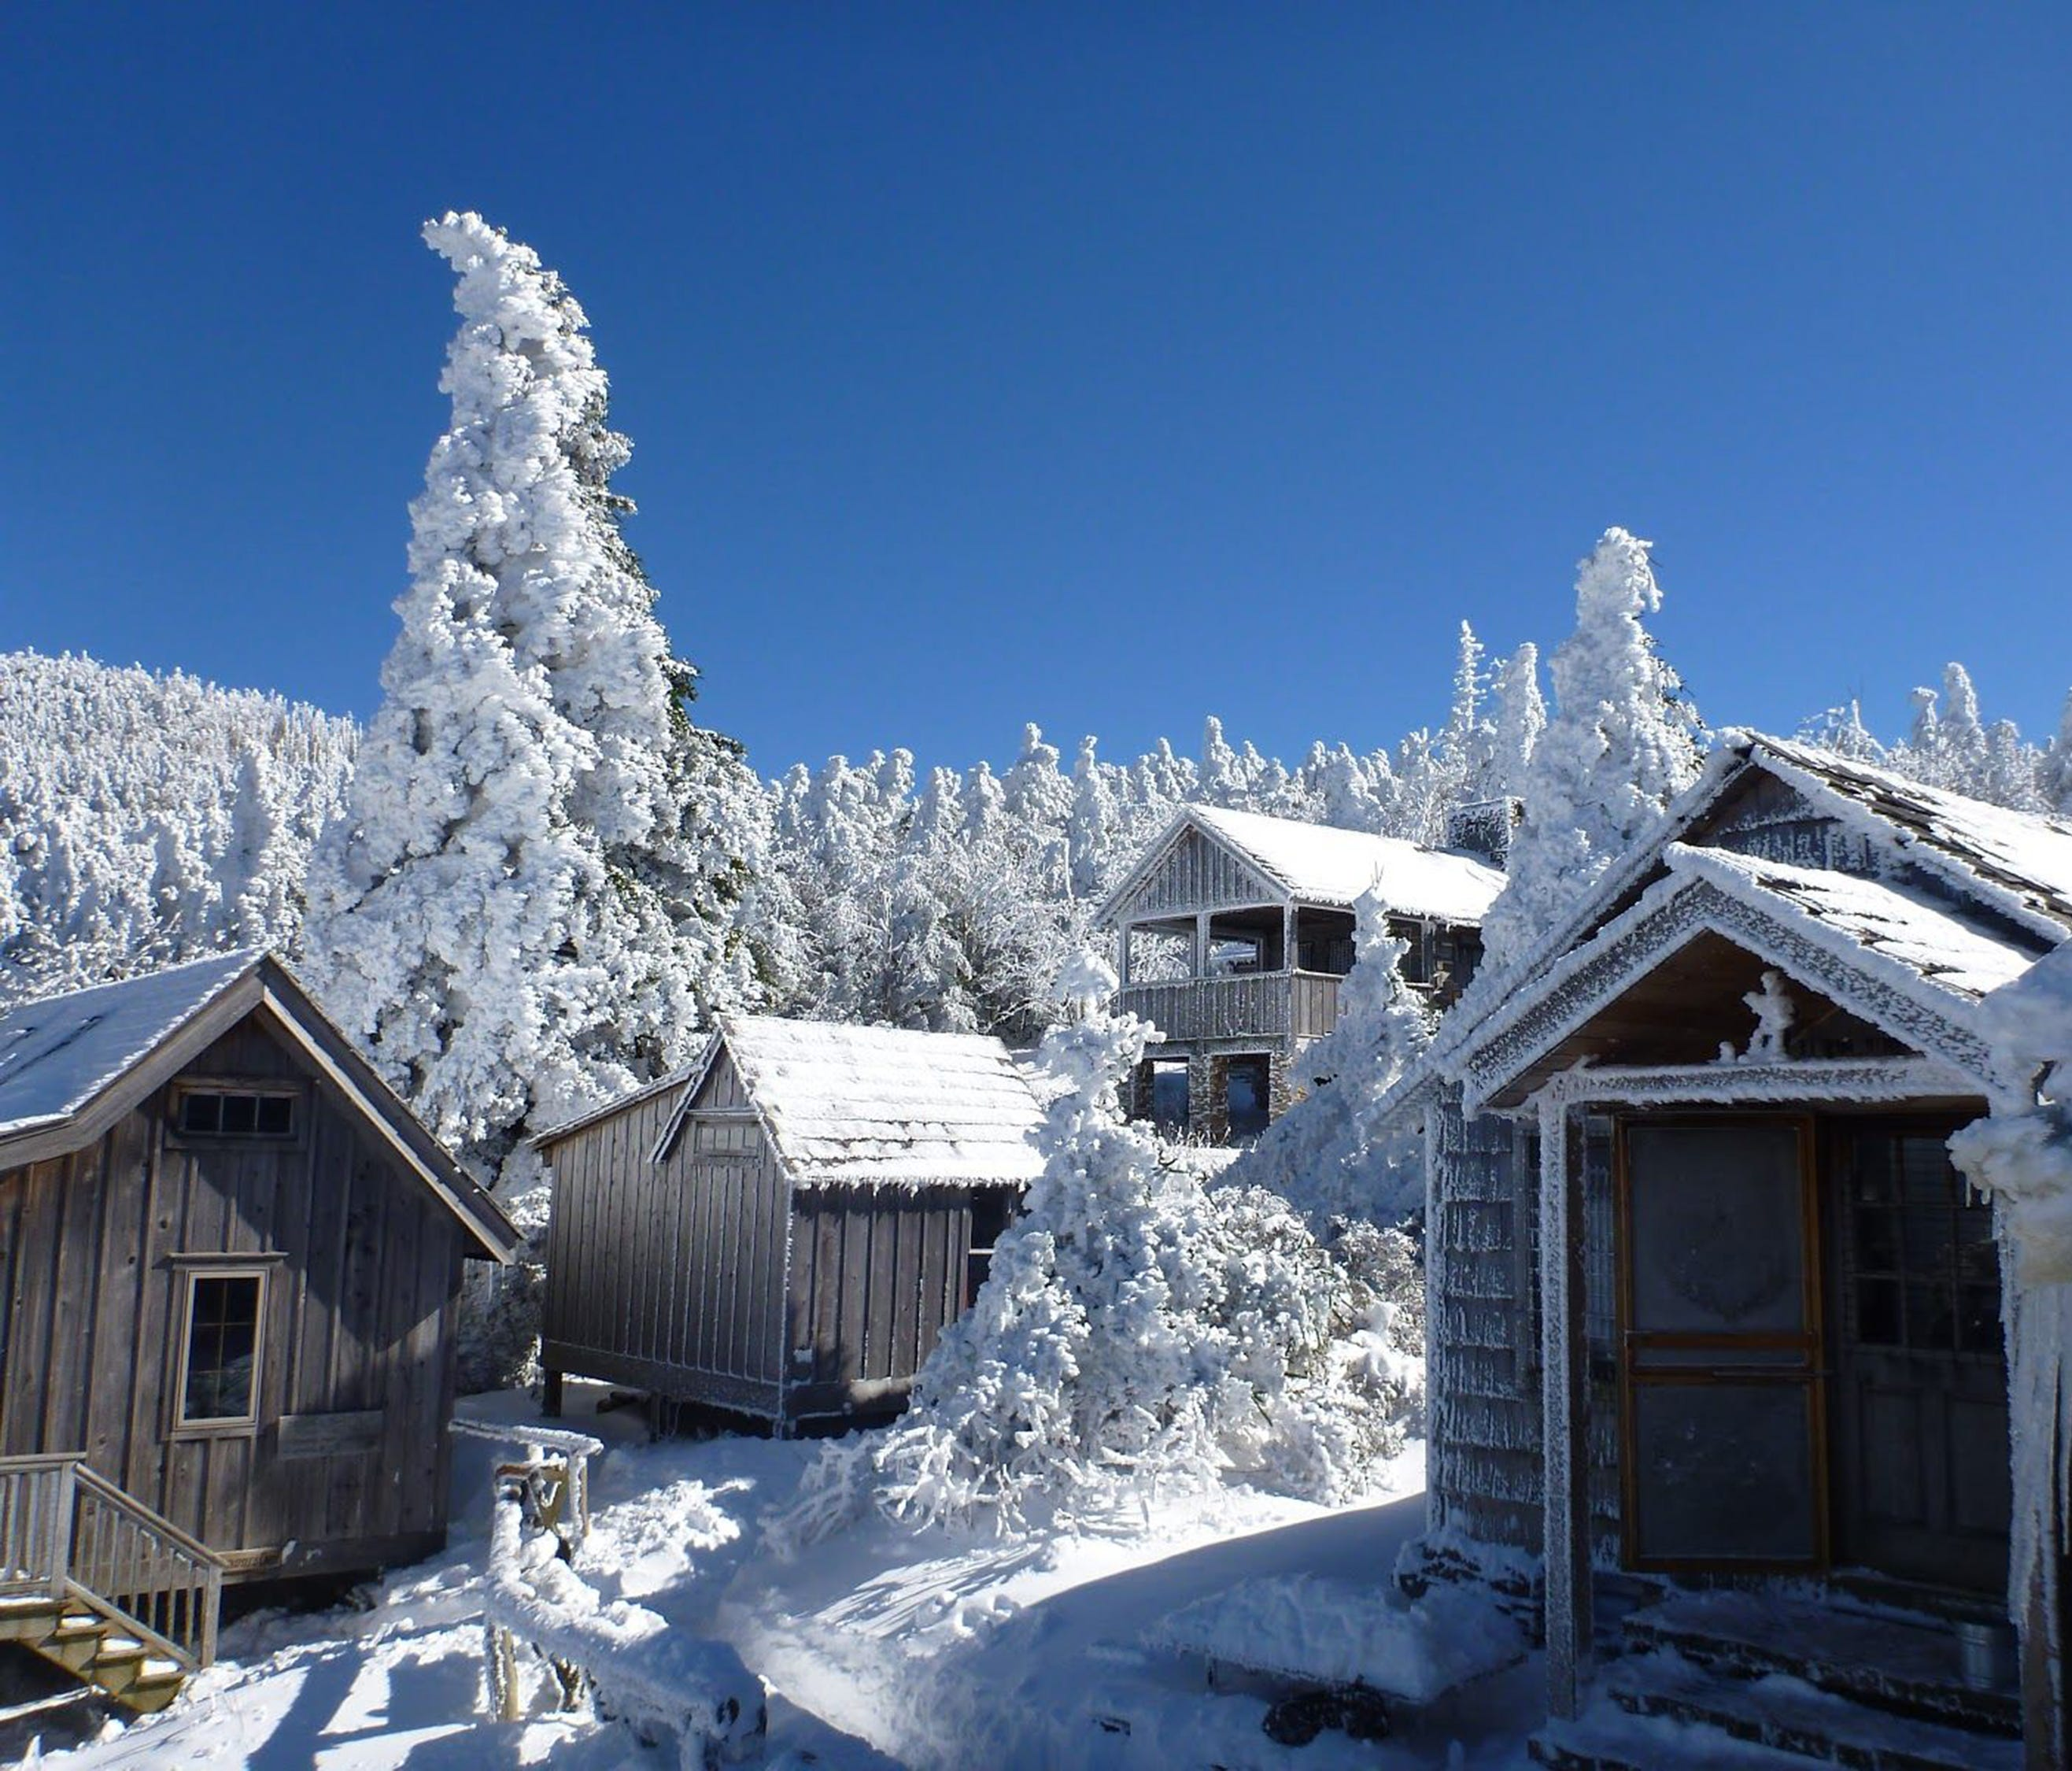 Snow blankets much of LeConte Lodge and its surrounding cabins on Mount LeConte in 2012 in the Great Smoky Mountains National Park near Gatlinburg, Tenn.